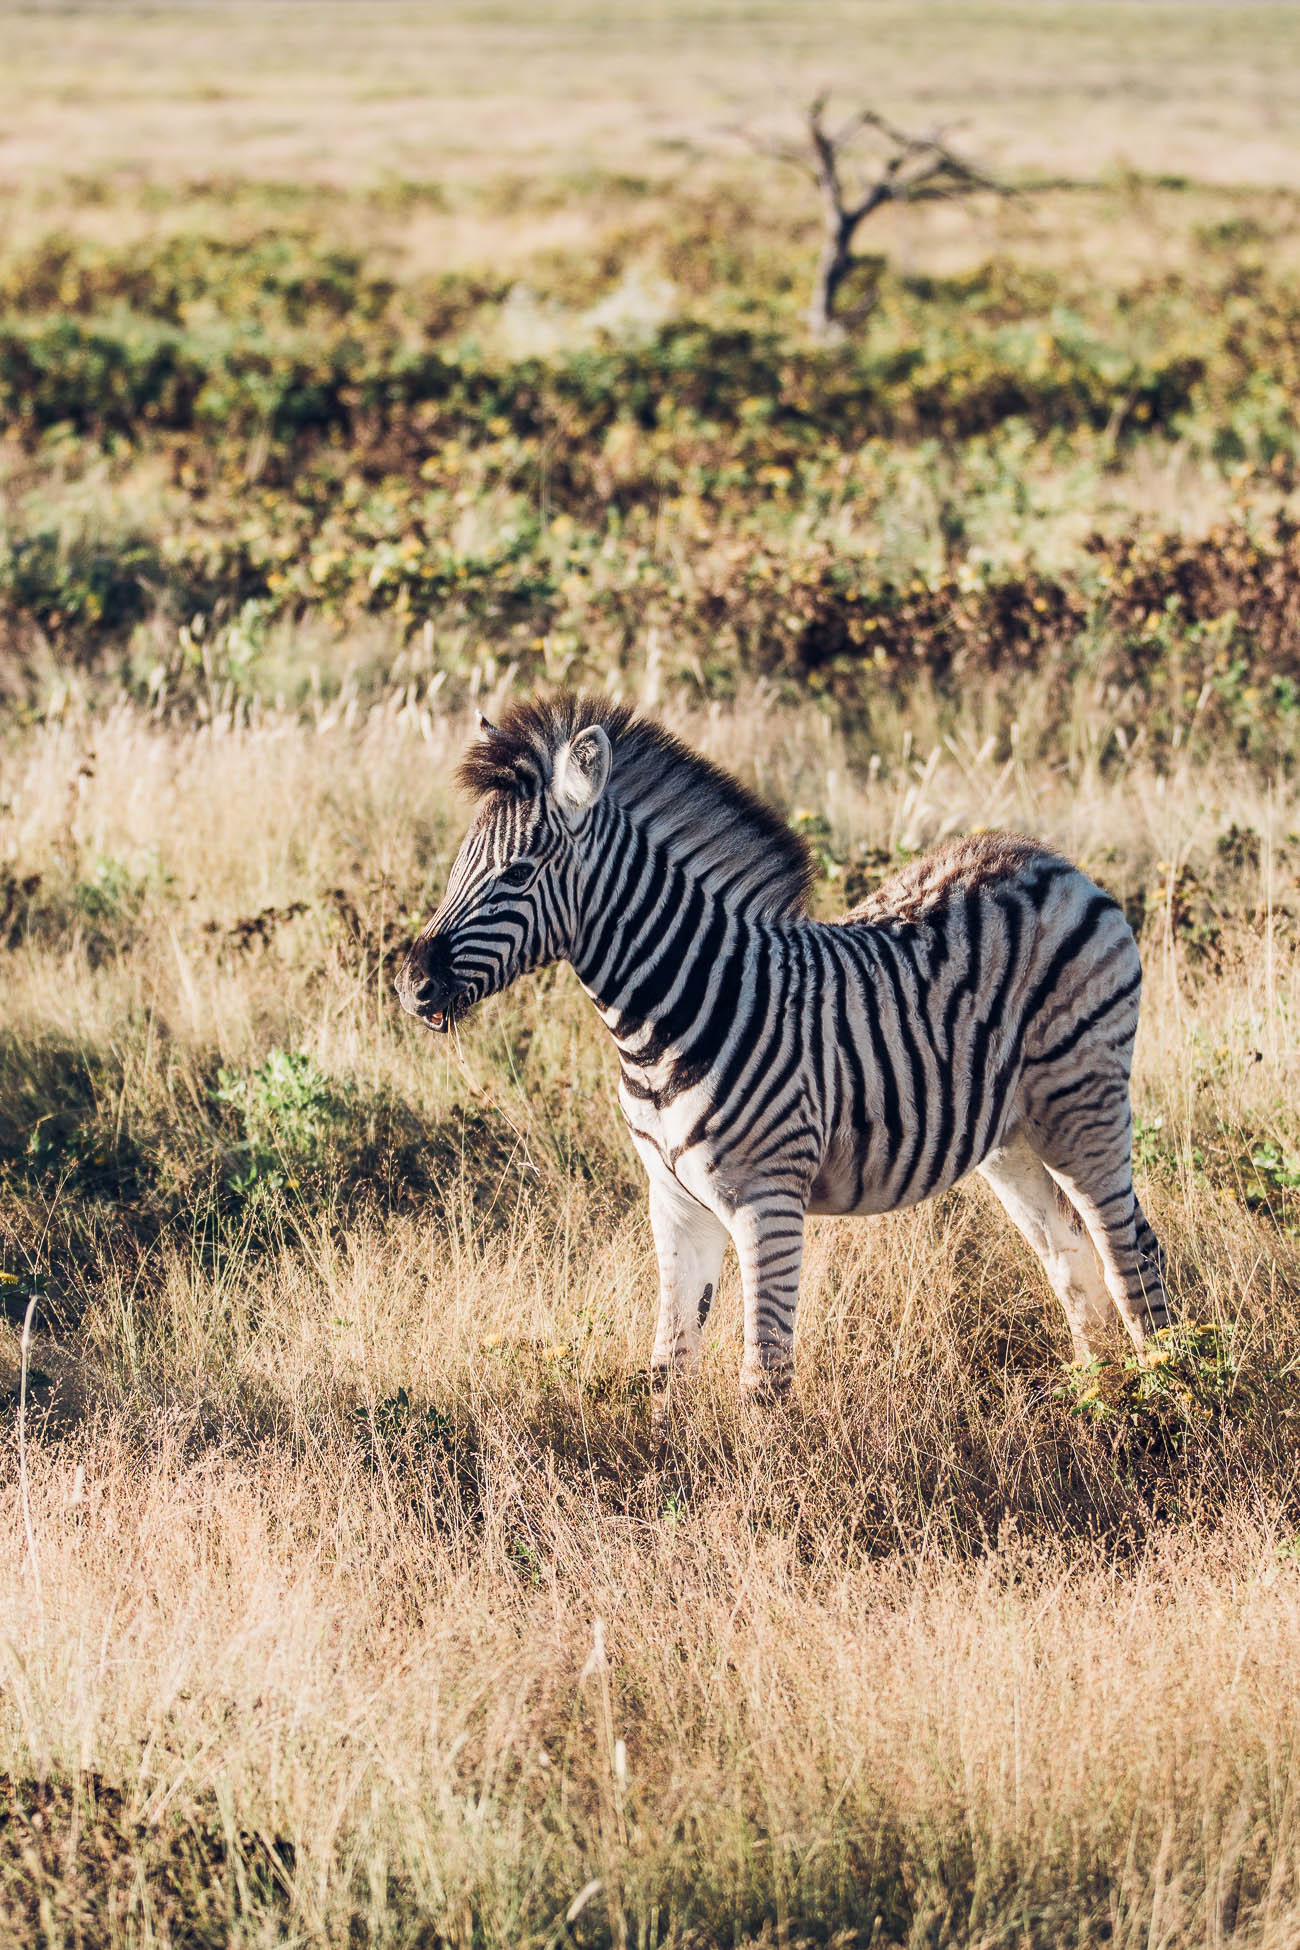 Zebra baby at Etosha National Park